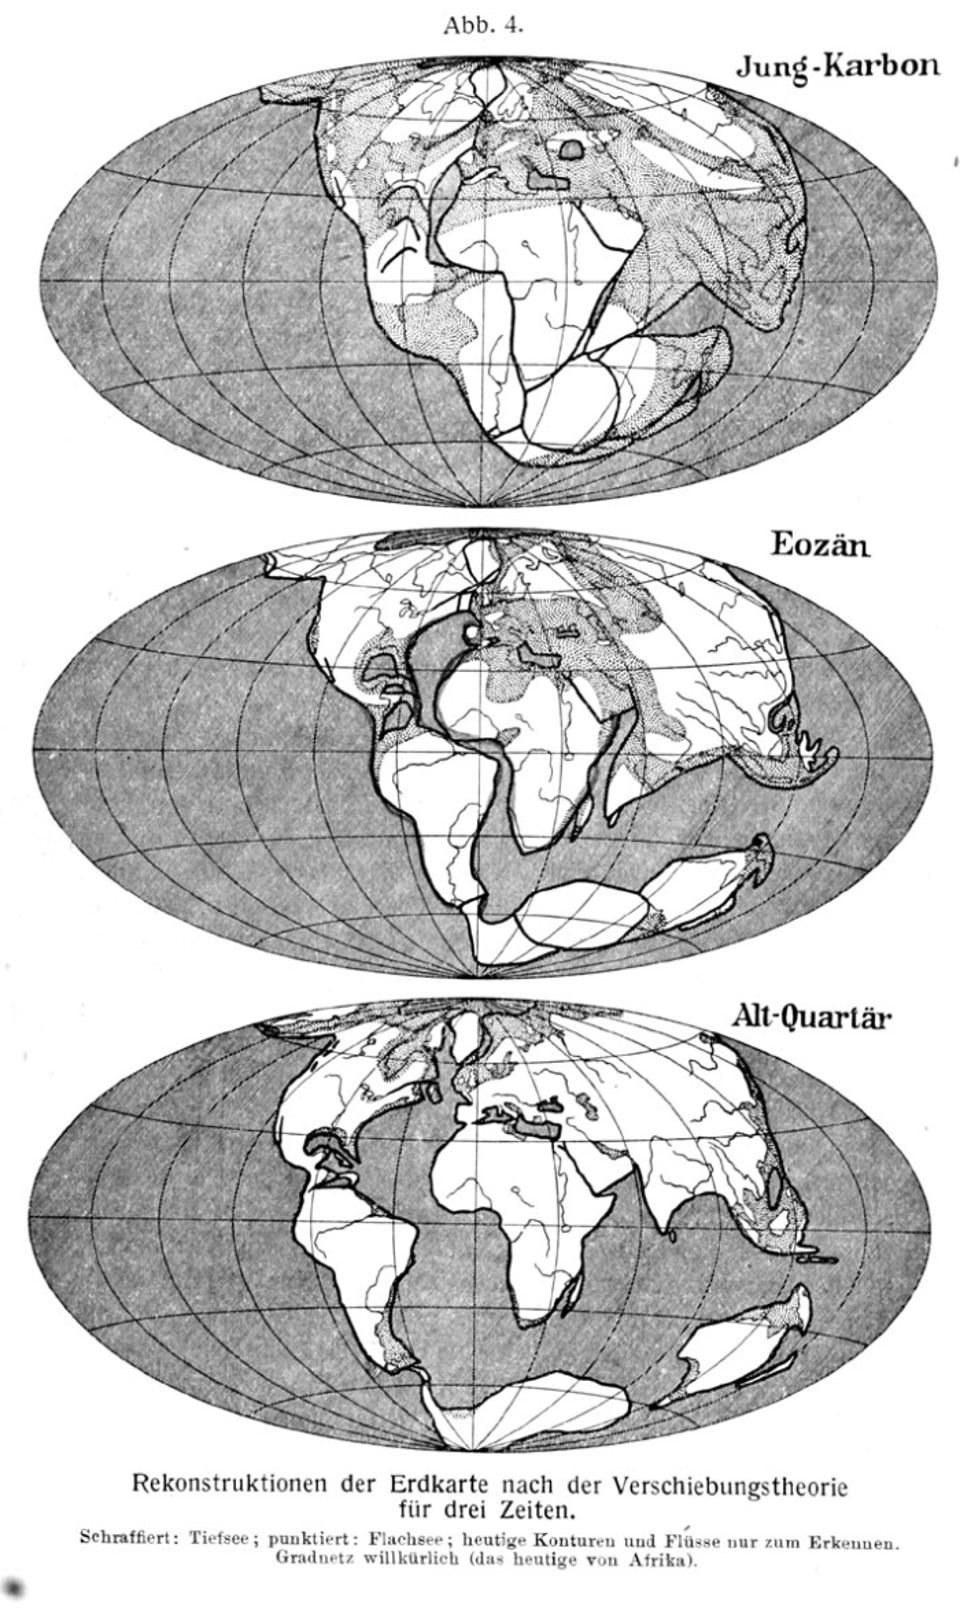 Reconstruction of the map of the world according to drift theory for three epochs, the upper one is the upper Carboniferous, the middle one is for the Eocene, and the lower one is for the Lower Quaternary. The dotted areas on the continents are areas where shallow seas existed during those time periods. This figure appears as Figure 4 in Wegener's book.